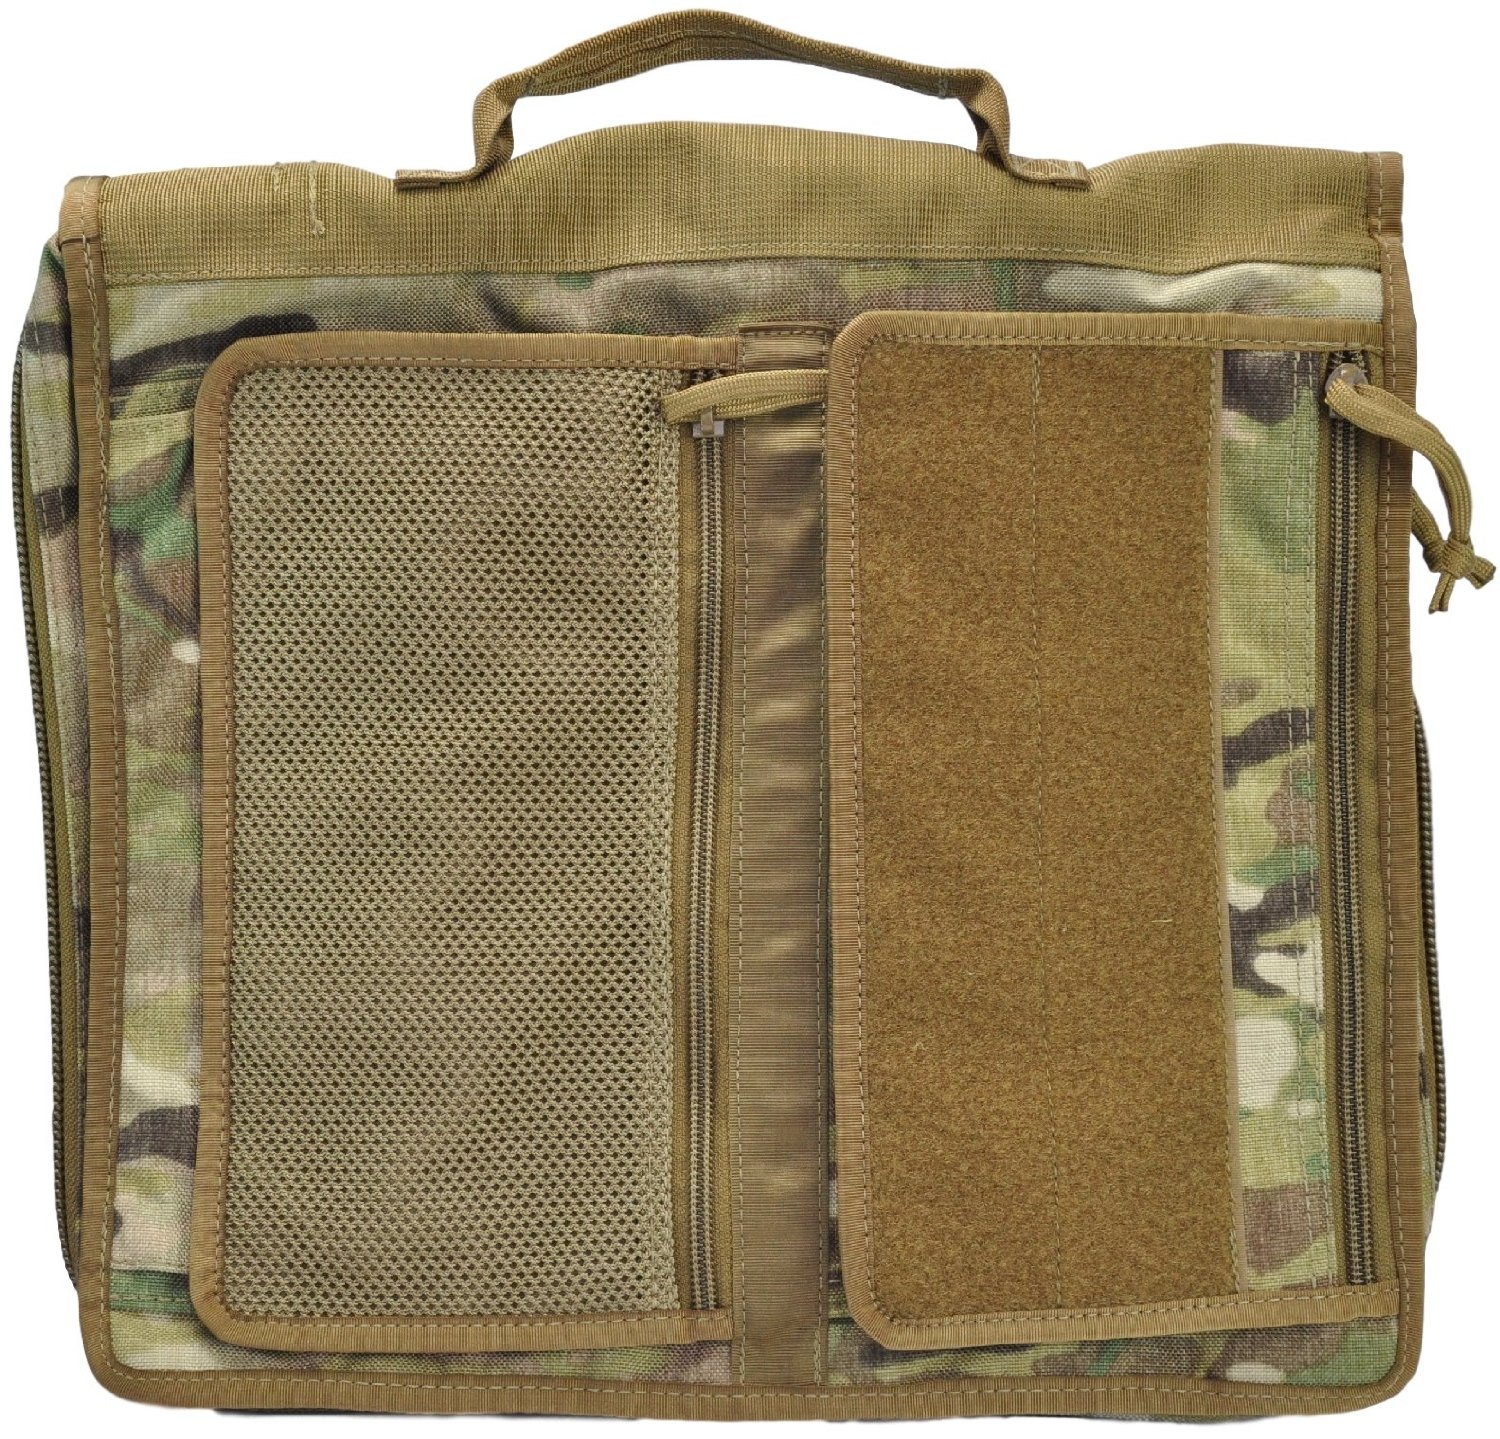 Buy Tactical 3-Ring Binder Cover, Large, Zippered Military